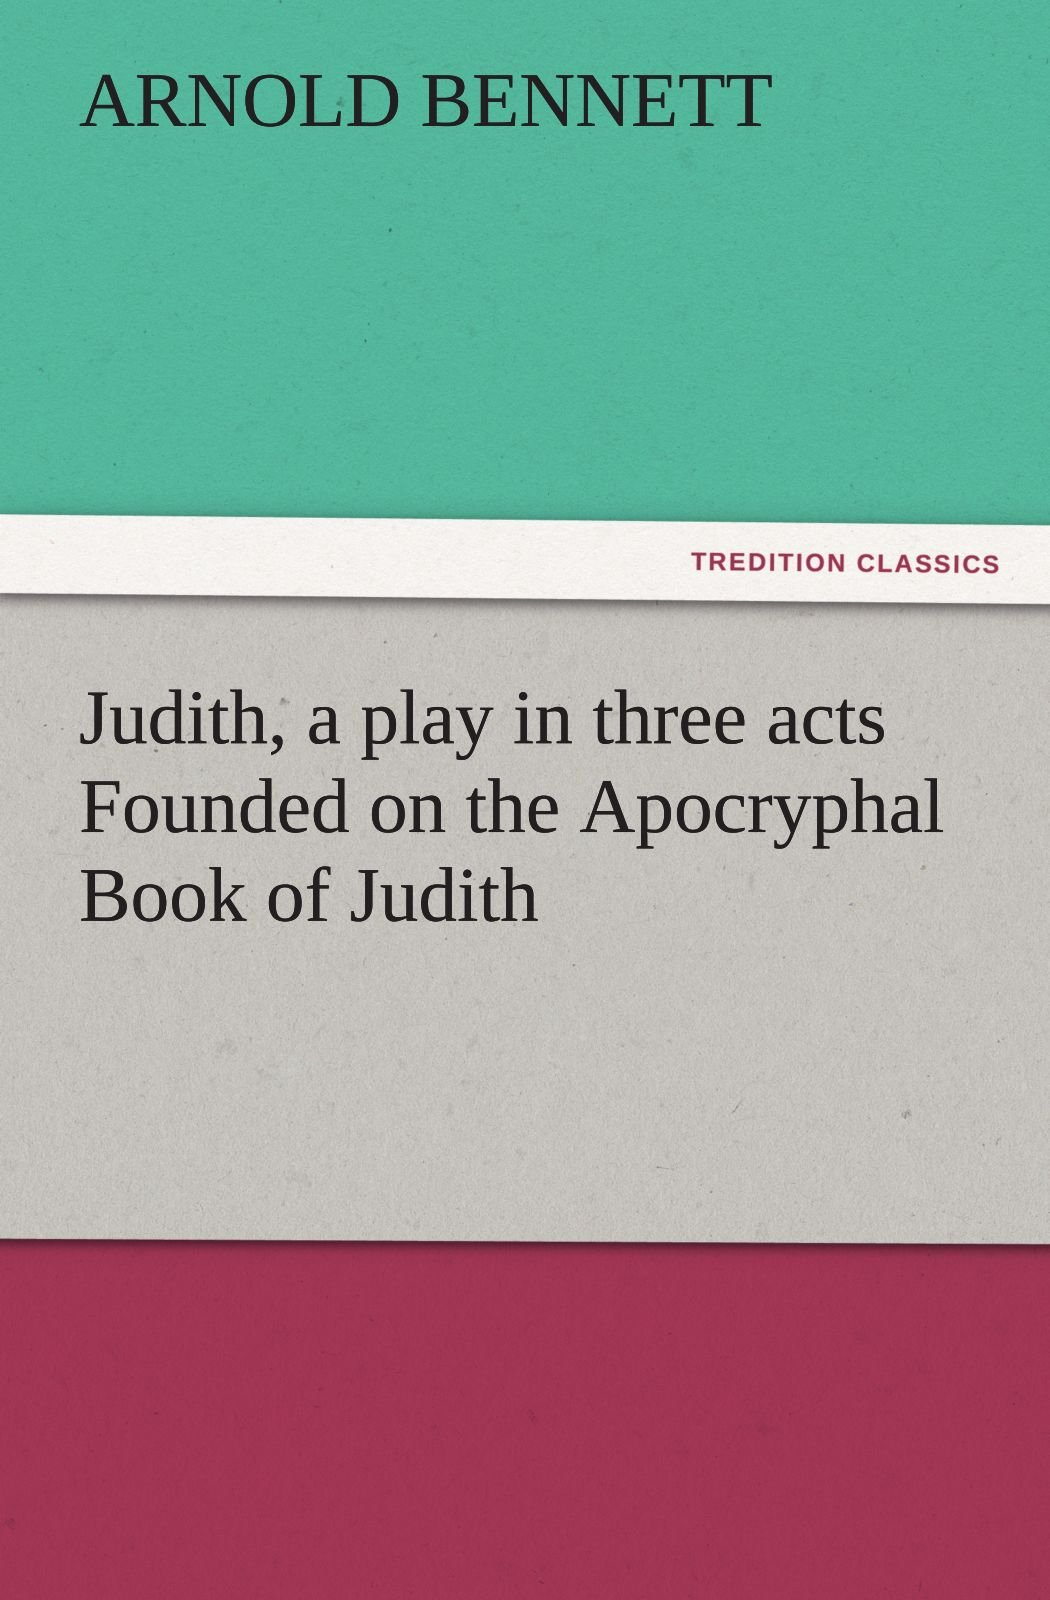 Download Judith, a play in three acts Founded on the Apocryphal Book of Judith (TREDITION CLASSICS) pdf